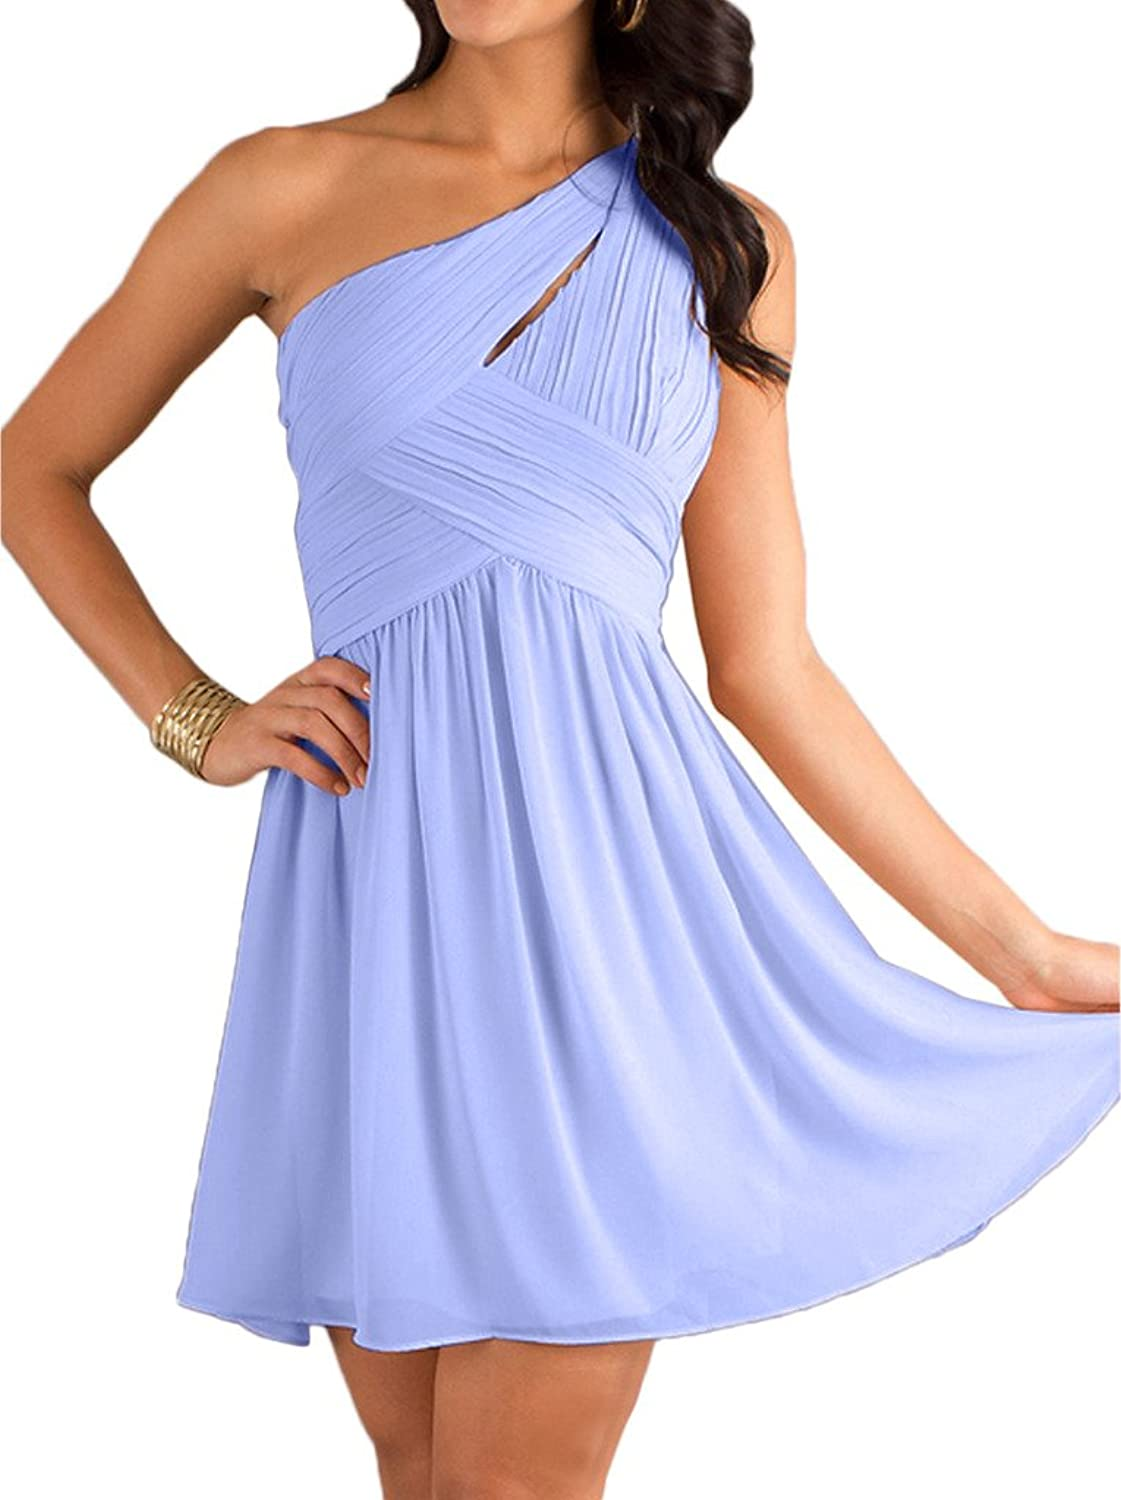 MILANO BRIDE Concise OneShoulder Pleat Homecoming dress Short Prom Party Dress